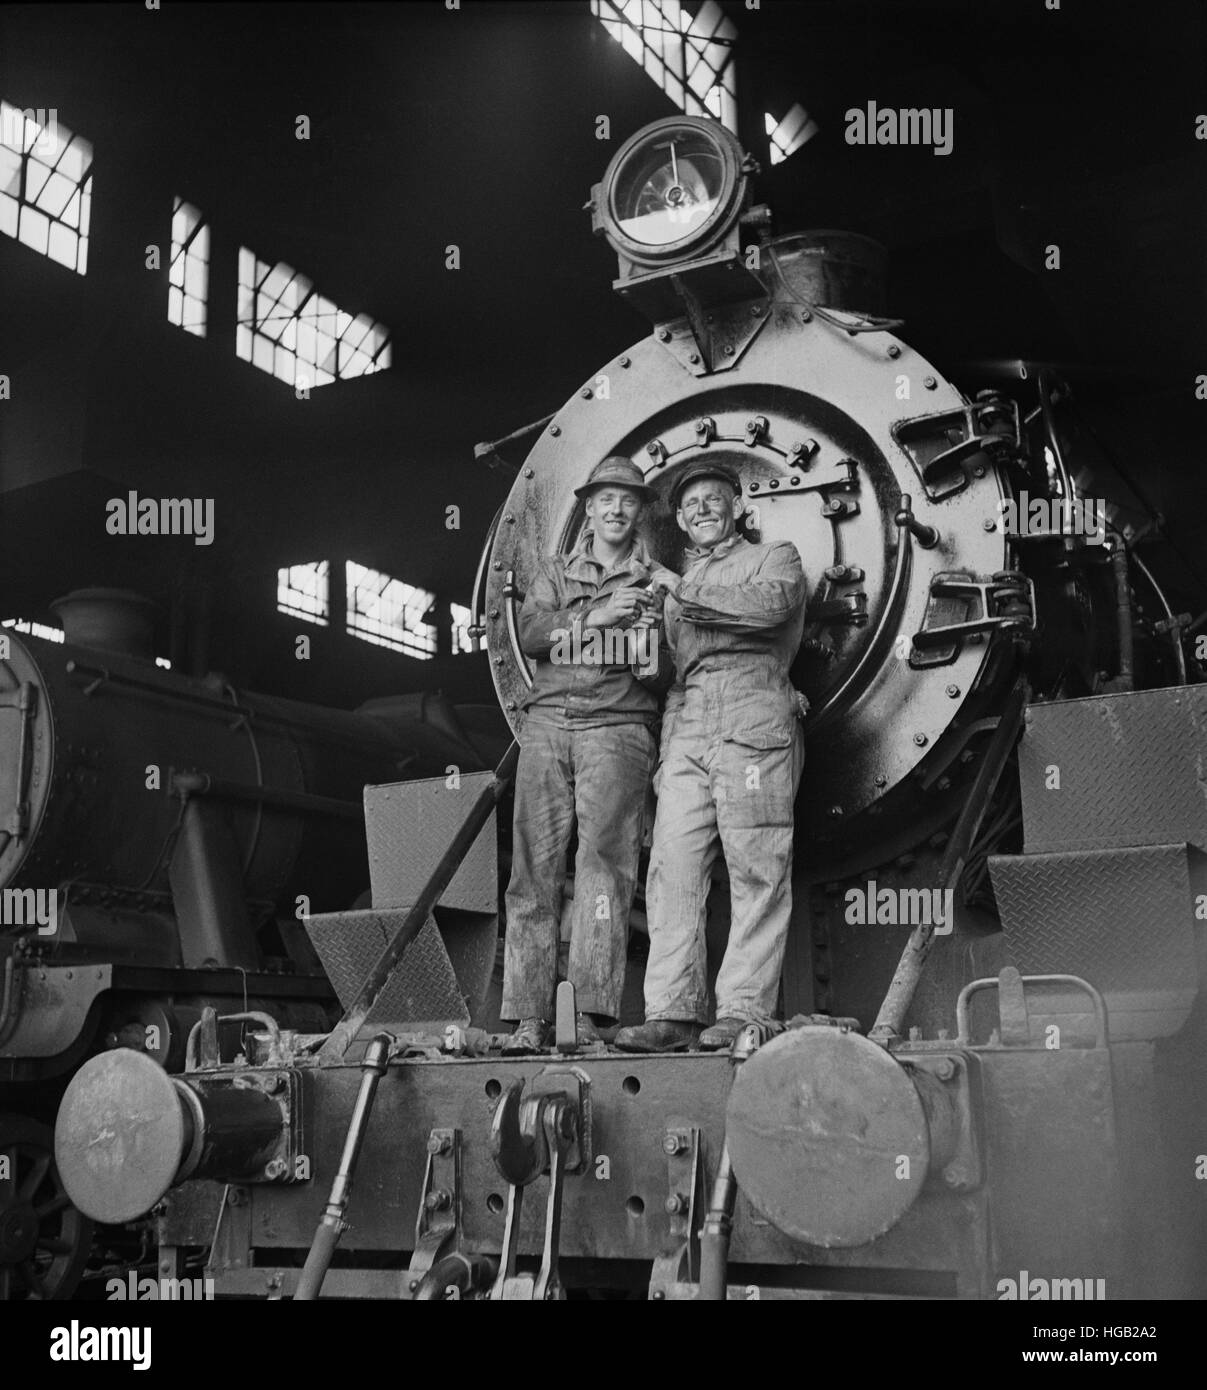 American and British engineers standing on an American engine in Iran, 1943. - Stock Image